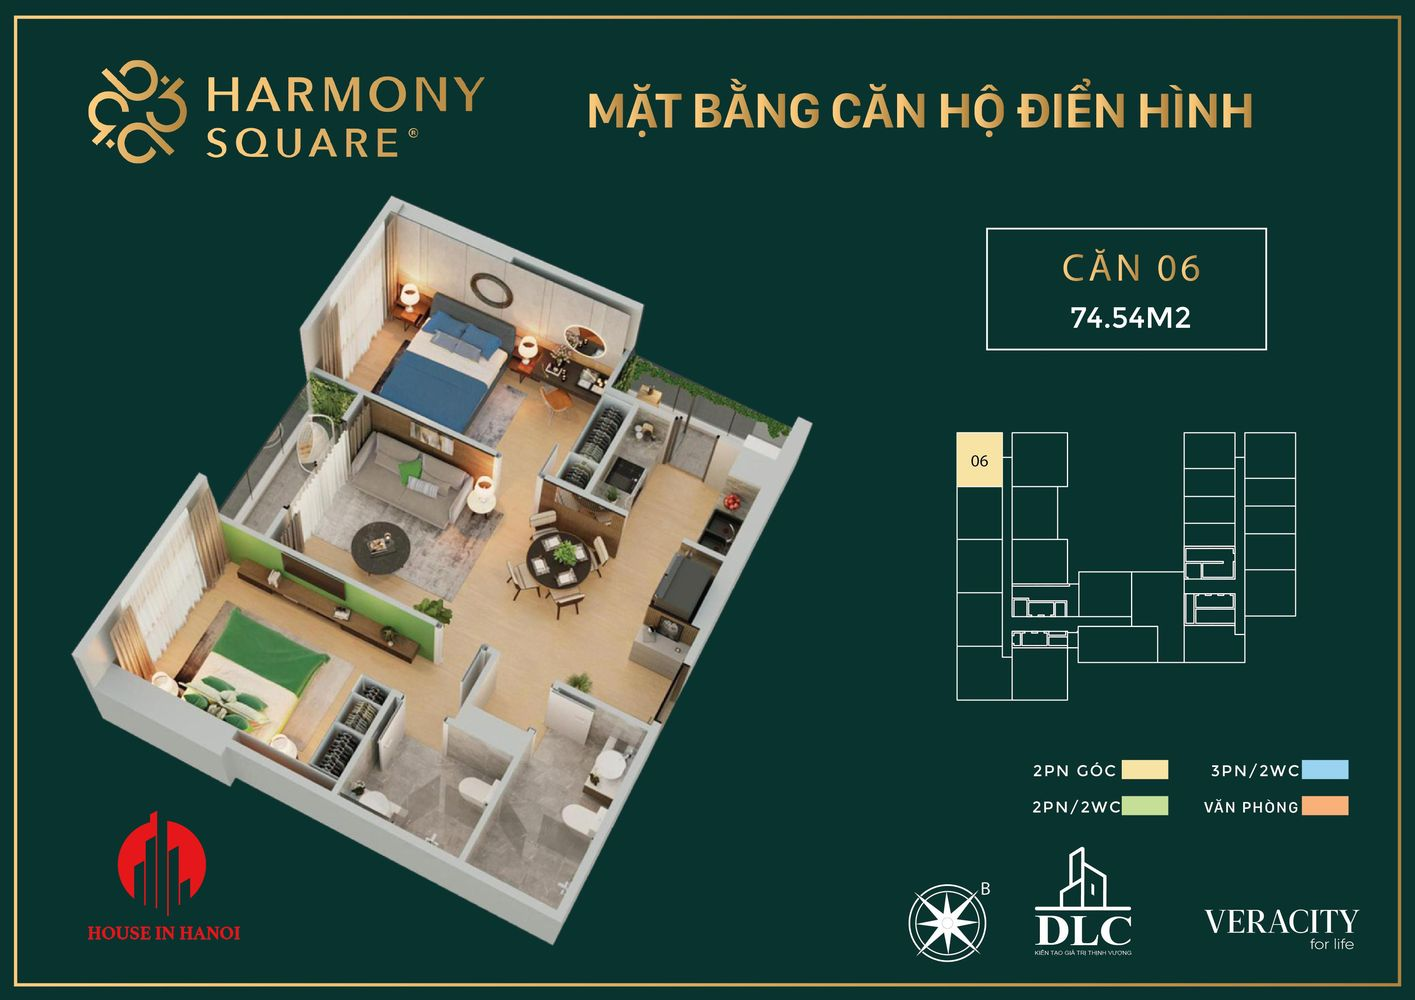 harmony square floor plan 5